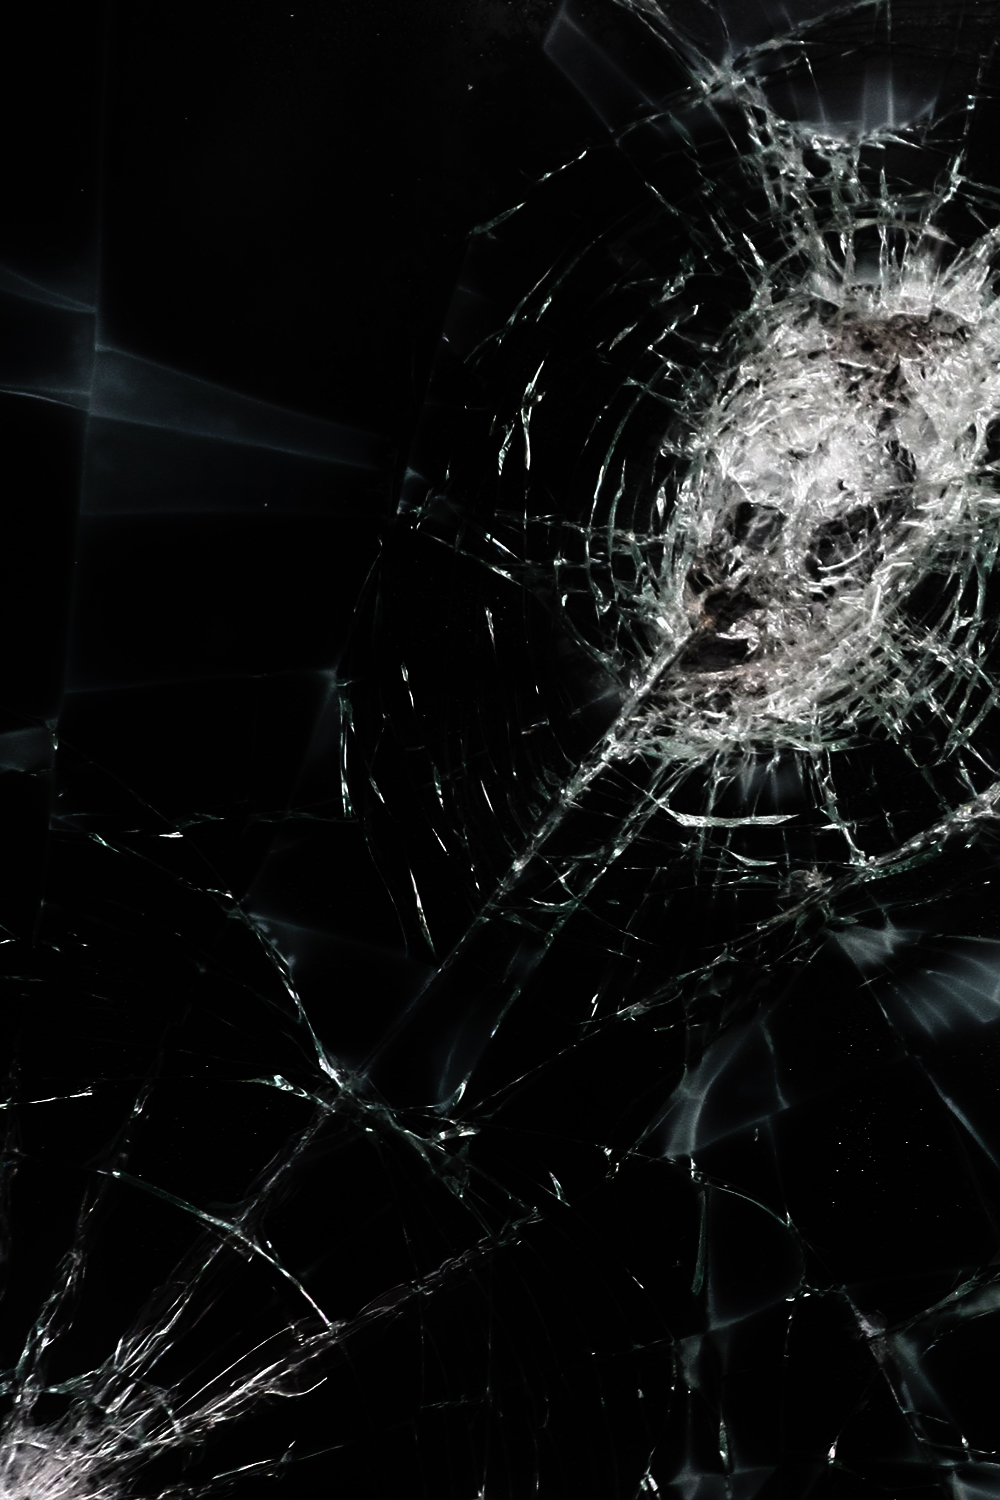 Broken Screen Wallpaper 4k Broken Screen Wallpaper Spider Web 1000x1500 Download Hd Wallpaper Wallpapertip